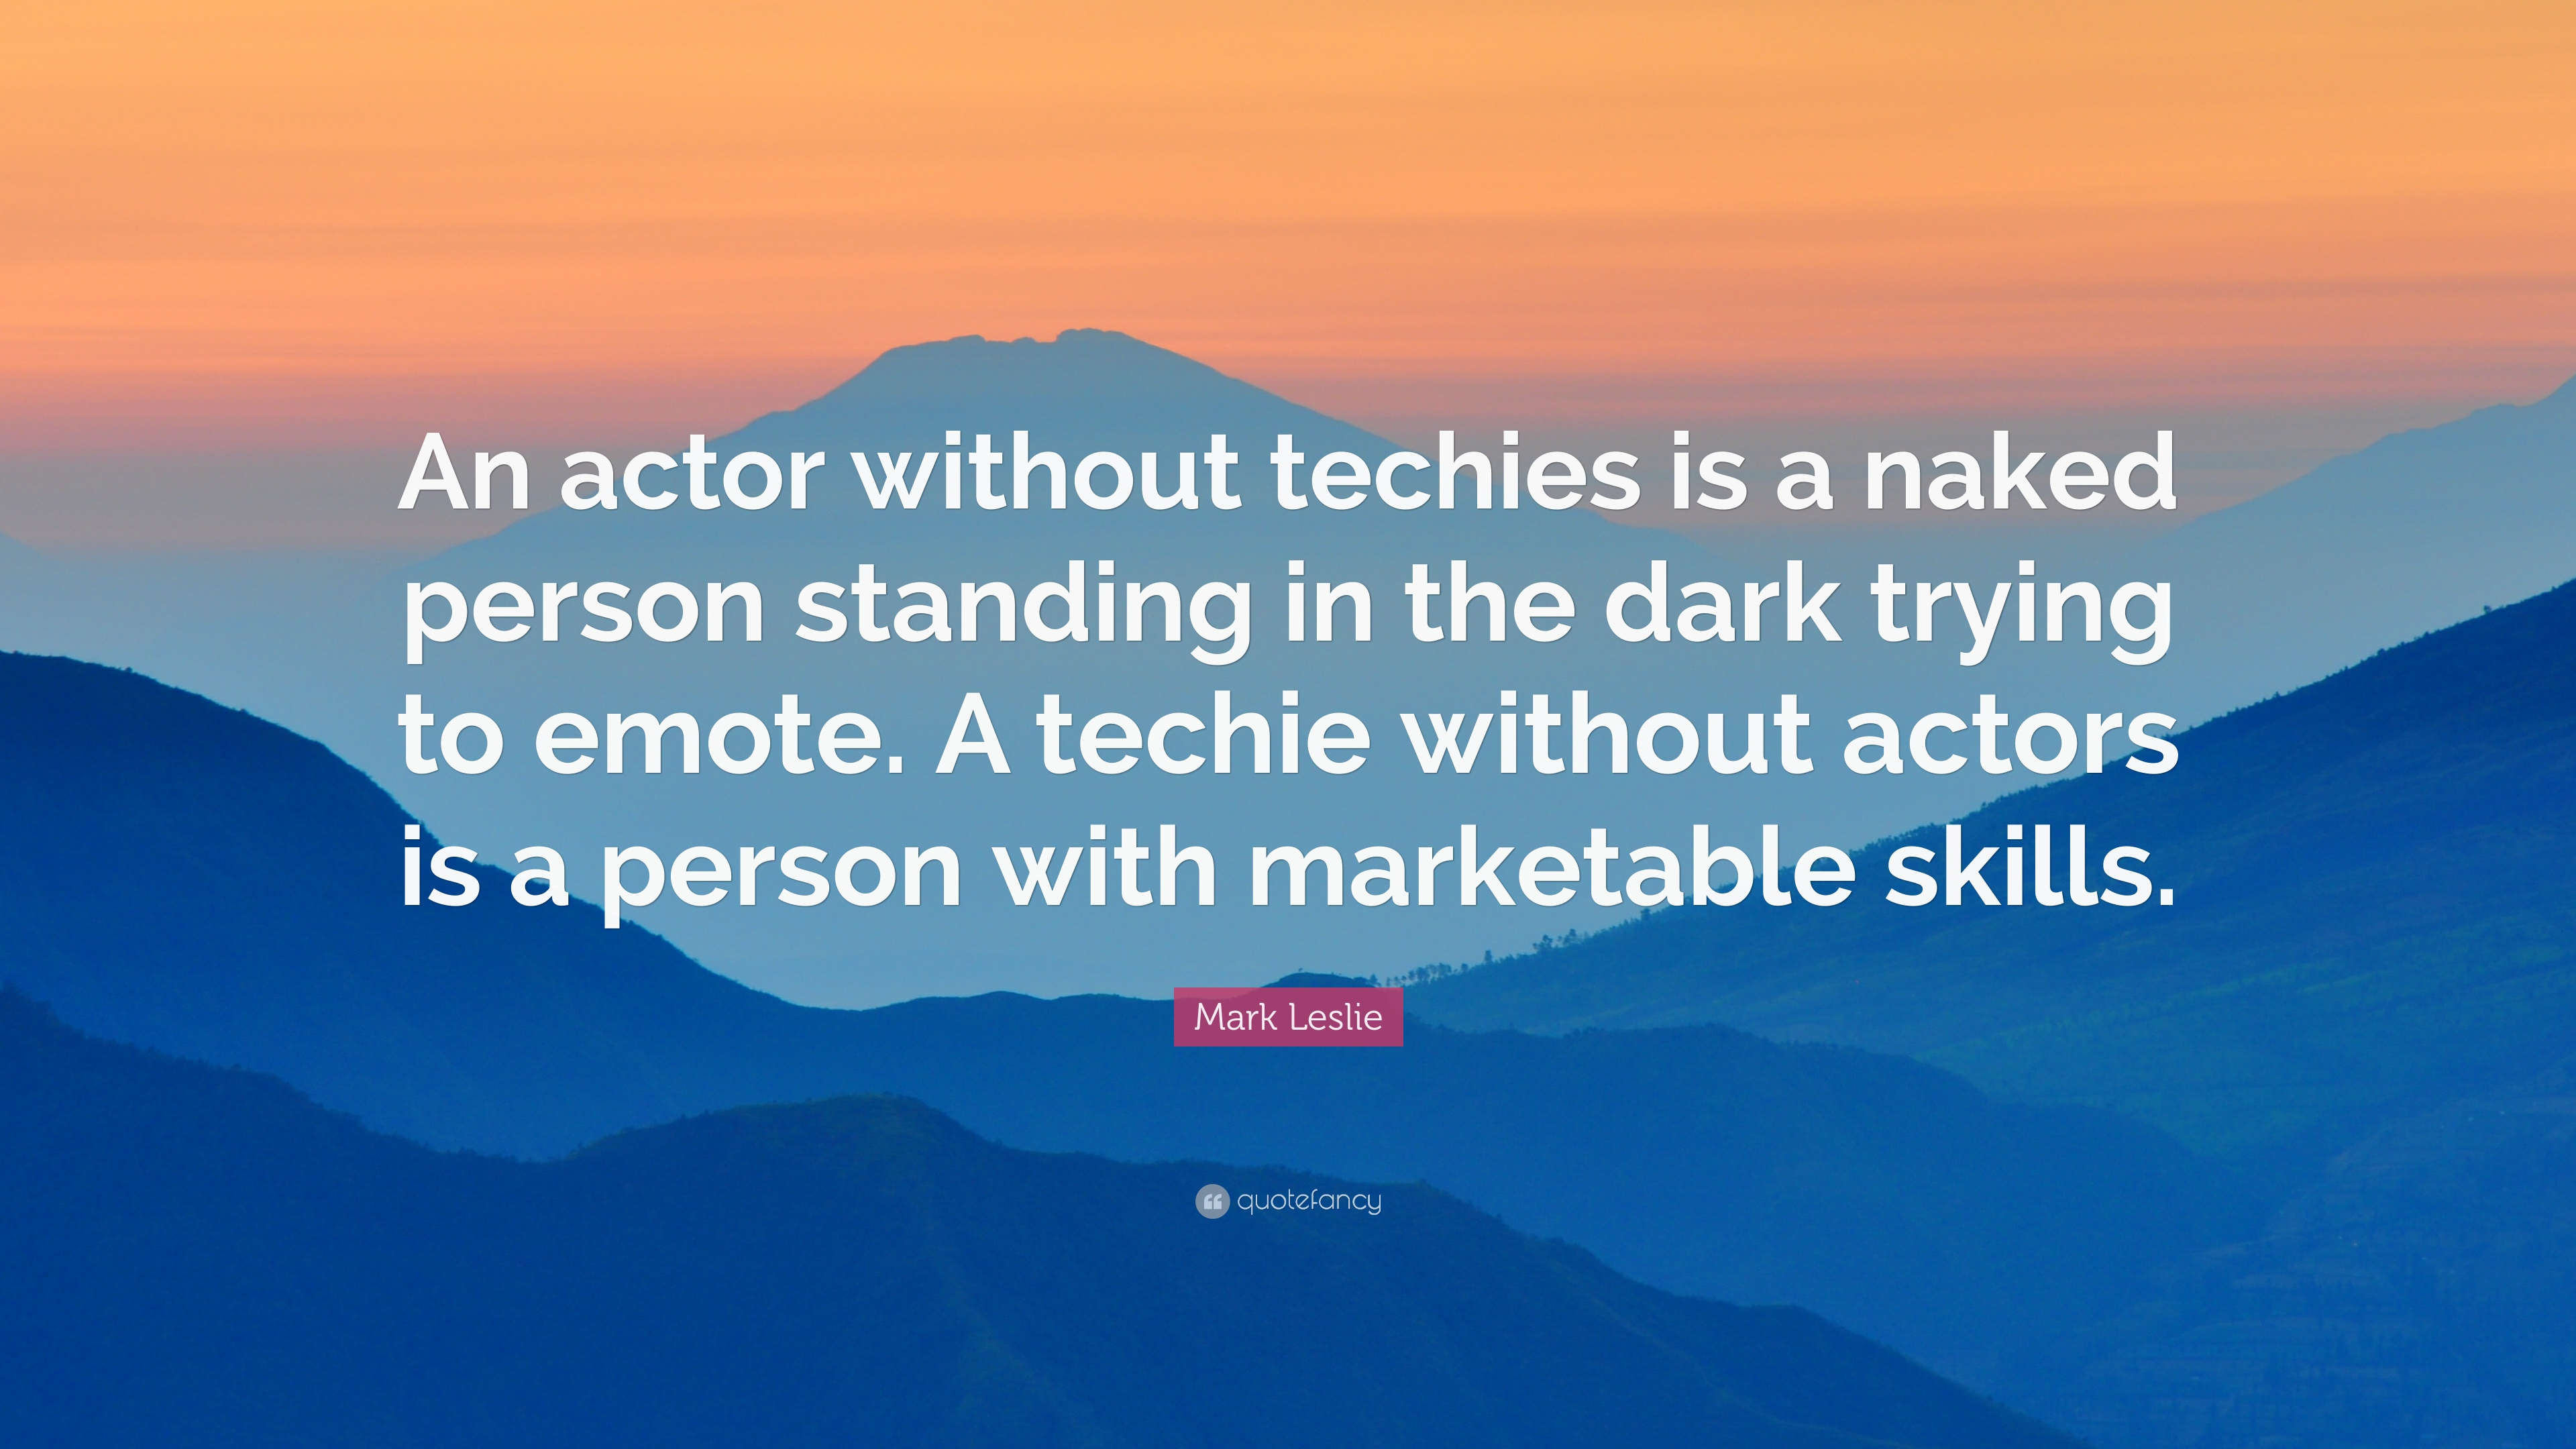 mark leslie quote an actor out techies is a naked person mark leslie quote an actor out techies is a naked person standing in the